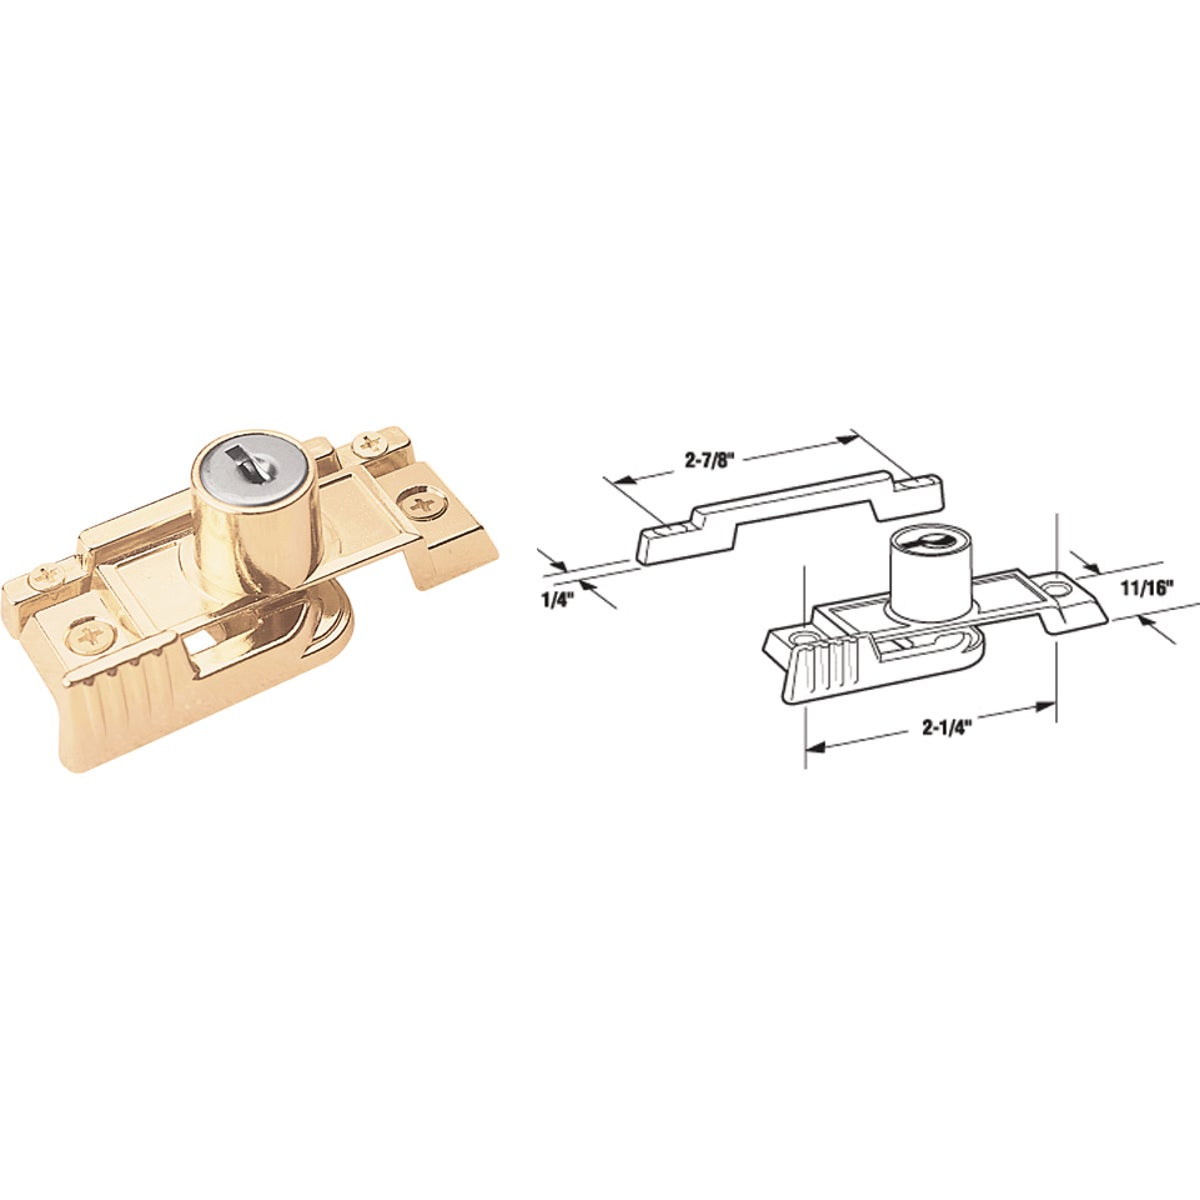 BRS KEYED SASH LOCK - U 9932 by Prime Line Products